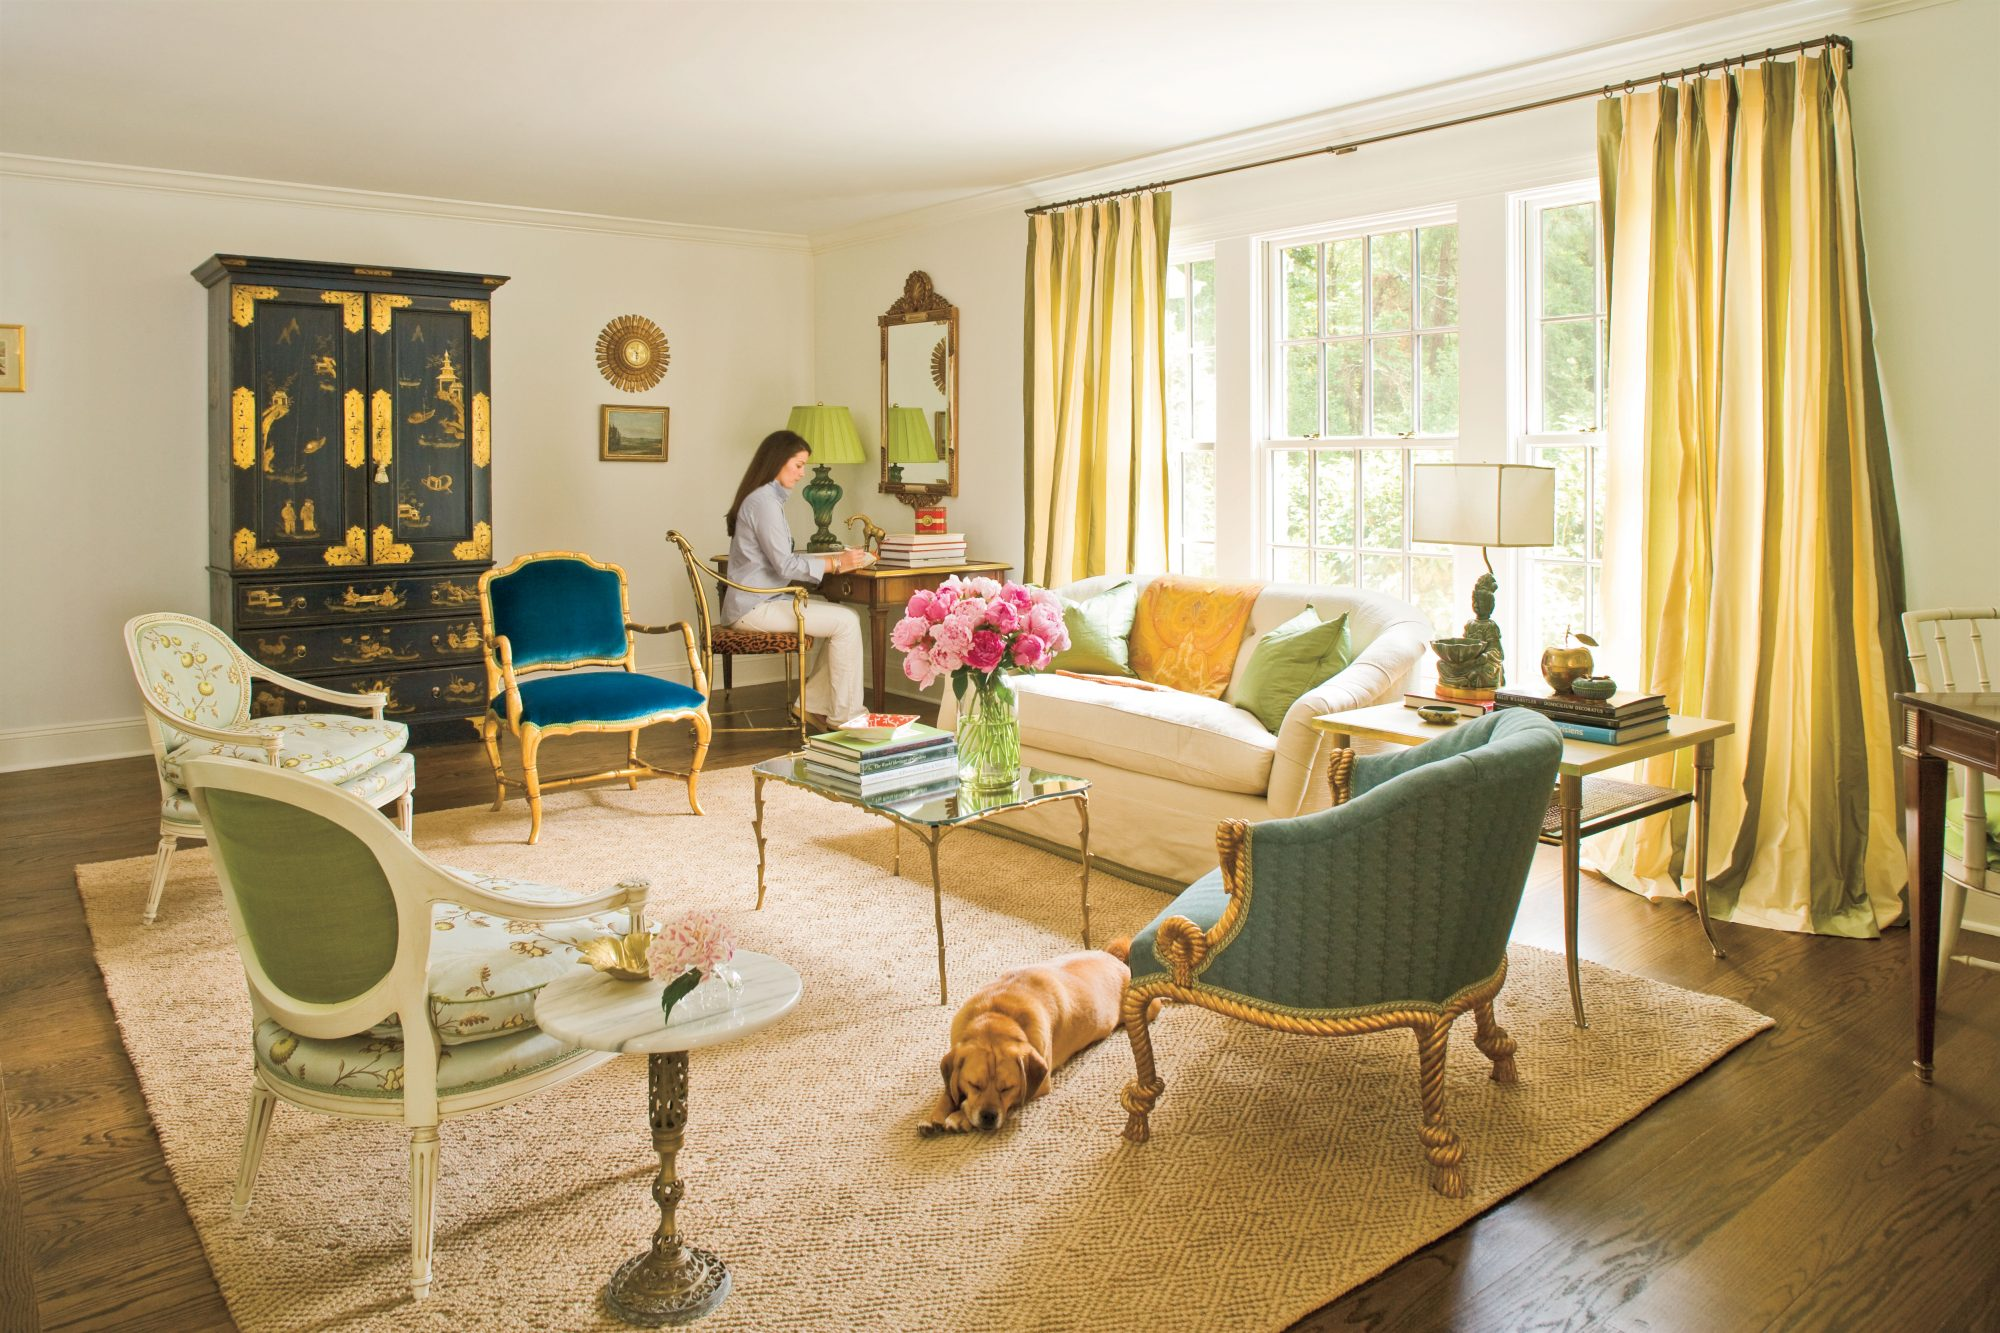 Cute overload adorable pups in pretty rooms southern living for Southern living keeping room ideas